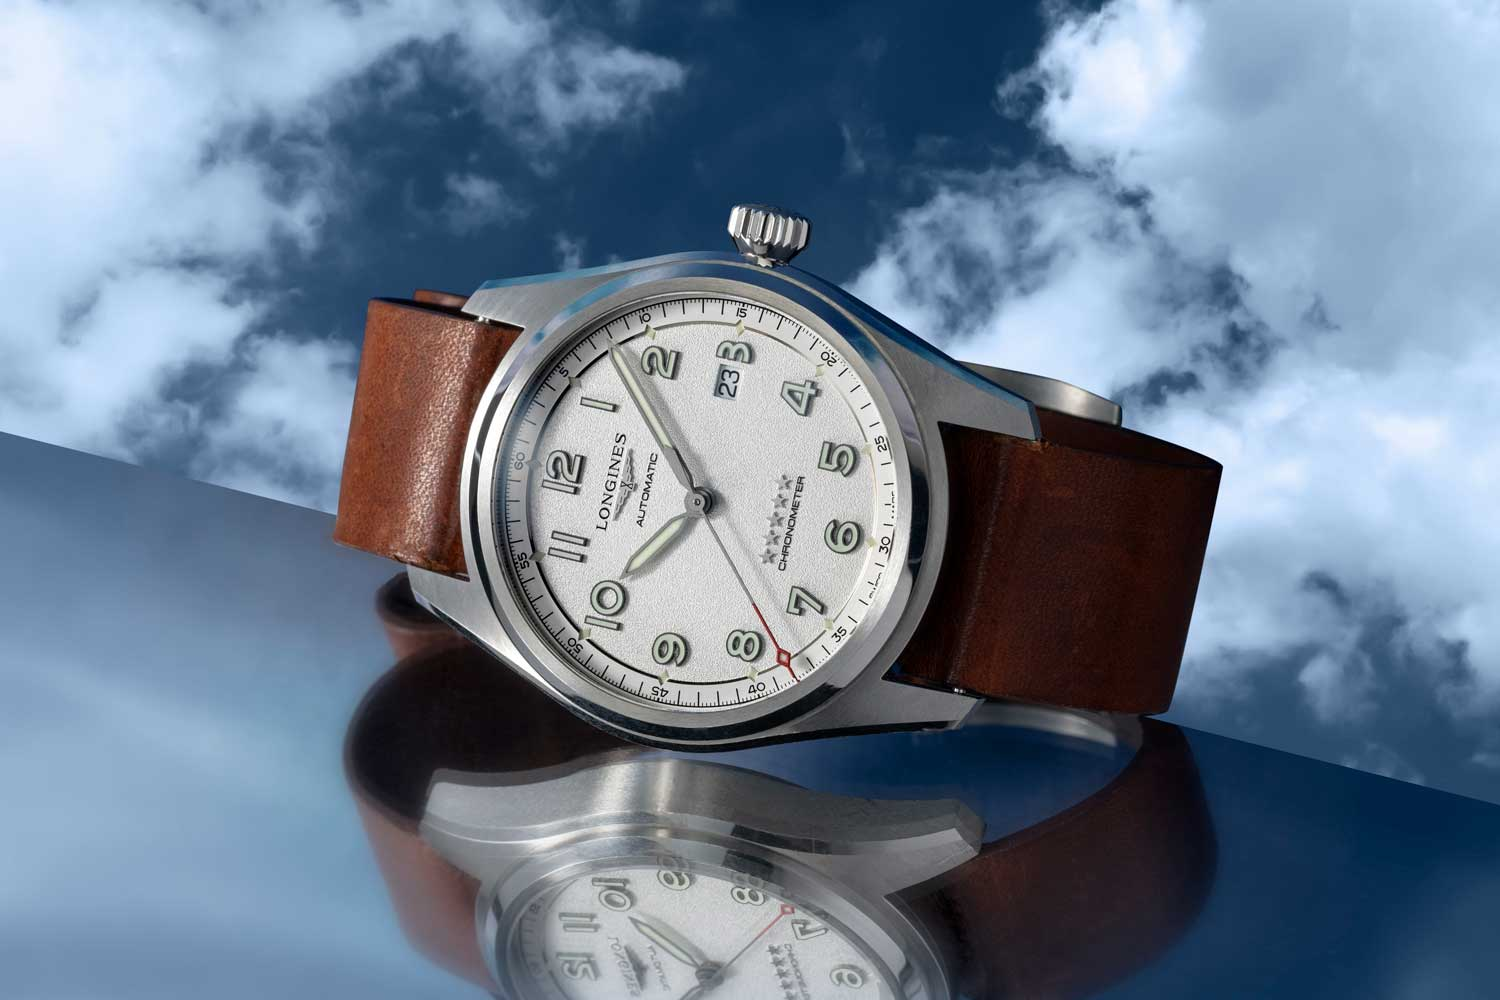 The silver grained dial version of the time only addition to the Spirit collection comes in a 42 and 40mm satin and polished steel case variation; housed inside is an exclusive COSC-certified self-winding movement (L888.4) with silicon hairspring; a domed sapphire glass protects the dial set with Arabic numerals and black sandblasted hands coated with Super-LumiNova®; the watch is seen here on a light brown leather strap (©Revolution)